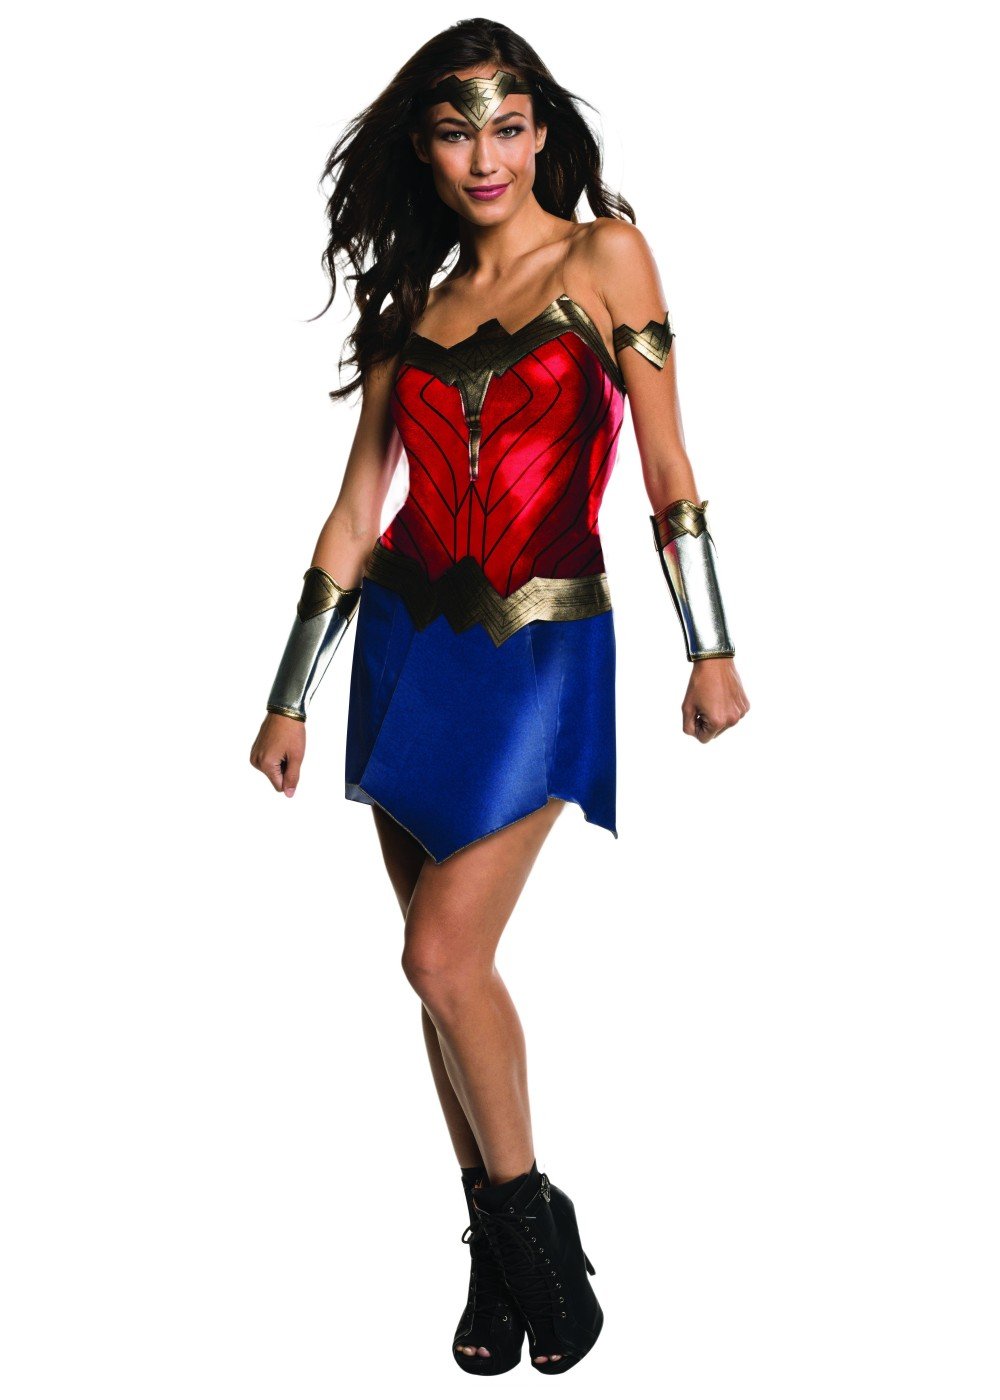 spirit halloween wonder woman costume